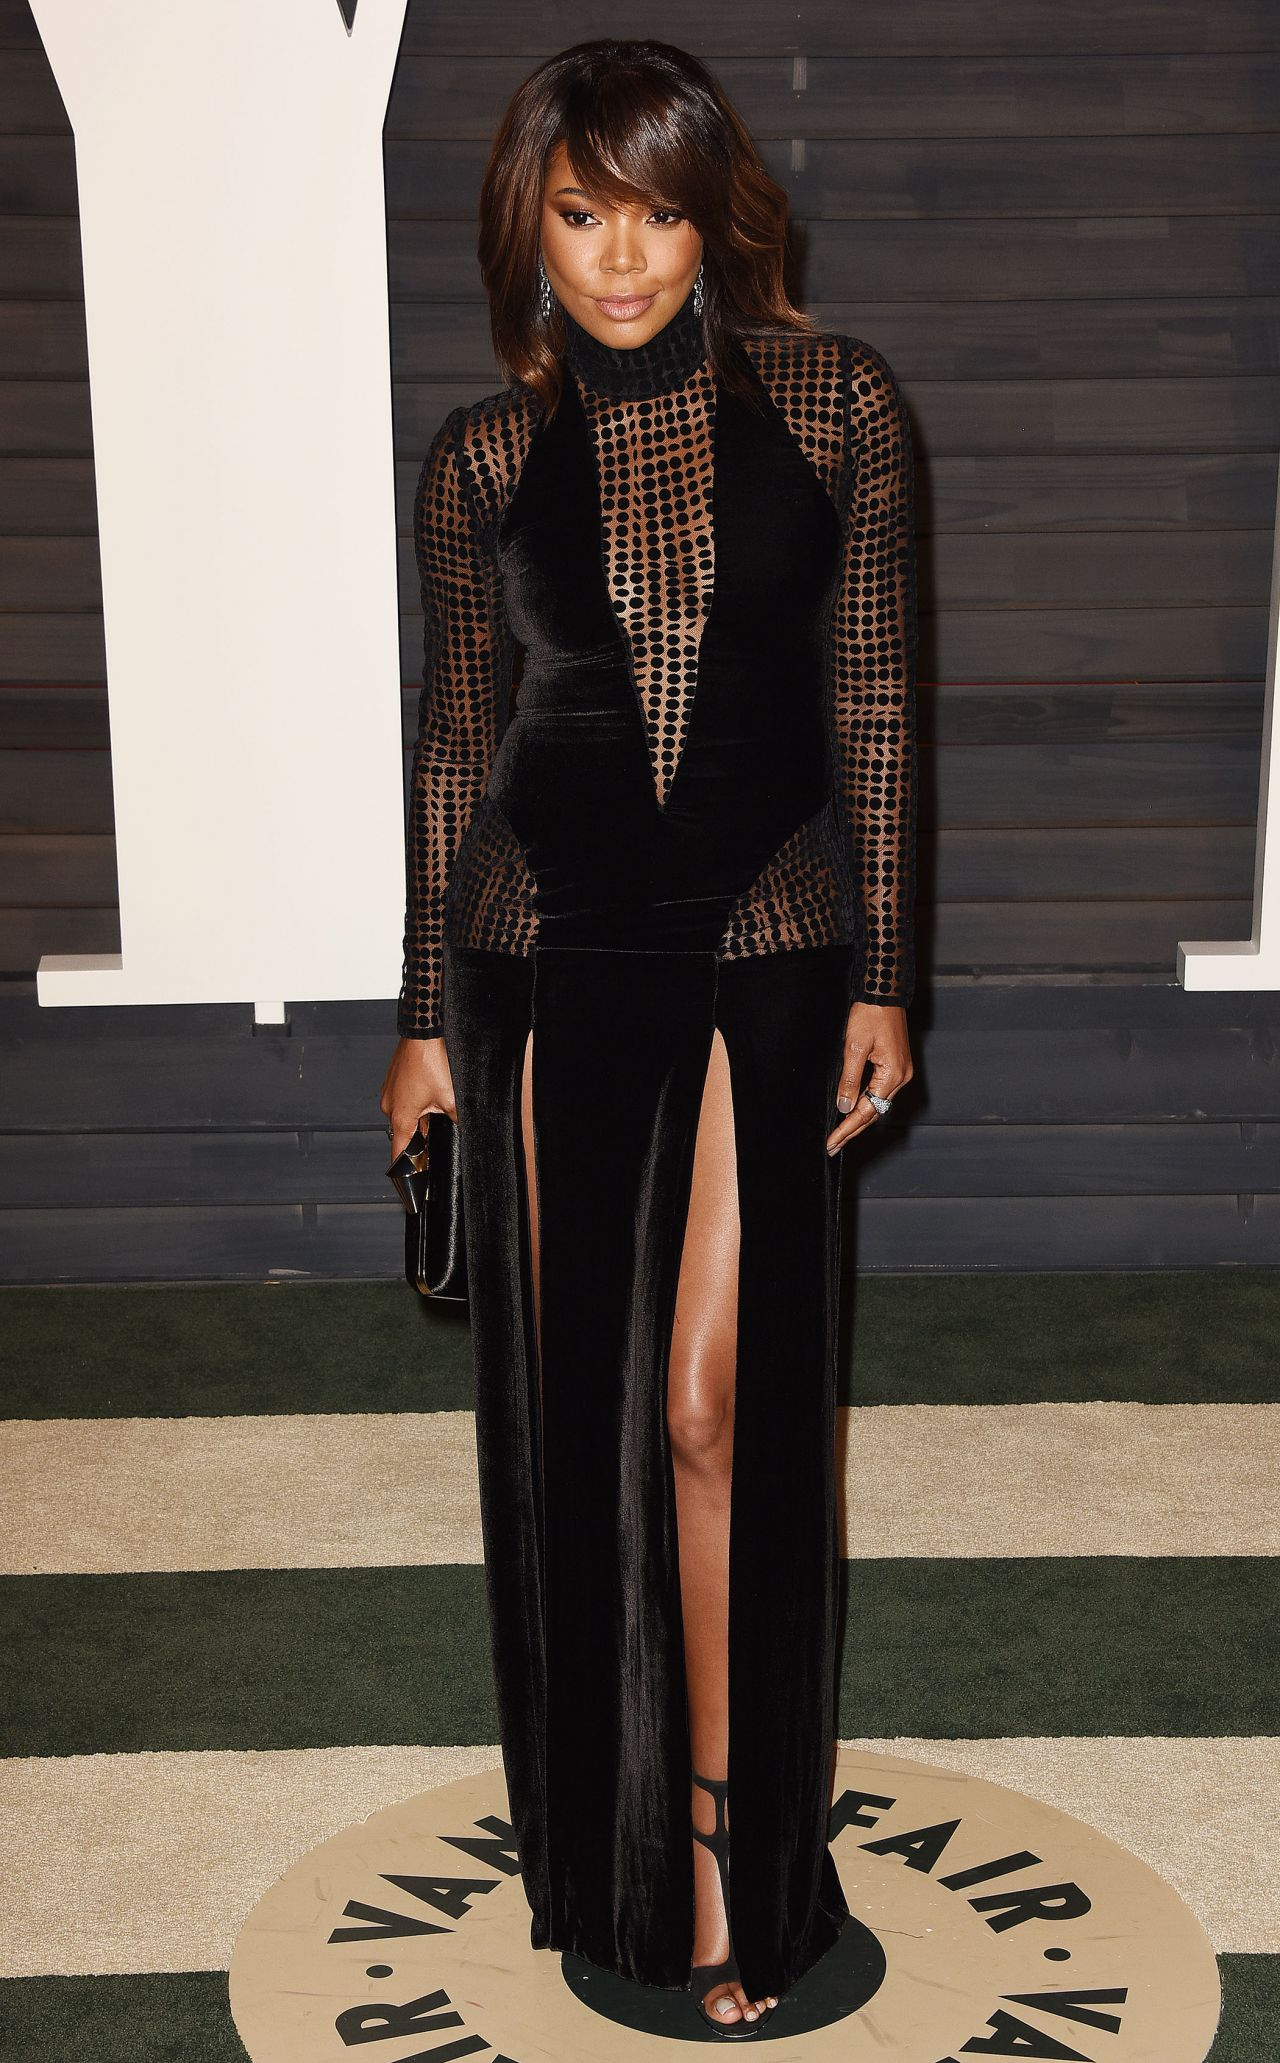 gabrielle-union-2016-vanity-fair-oscar-party-in-beverly-hills-ca-4